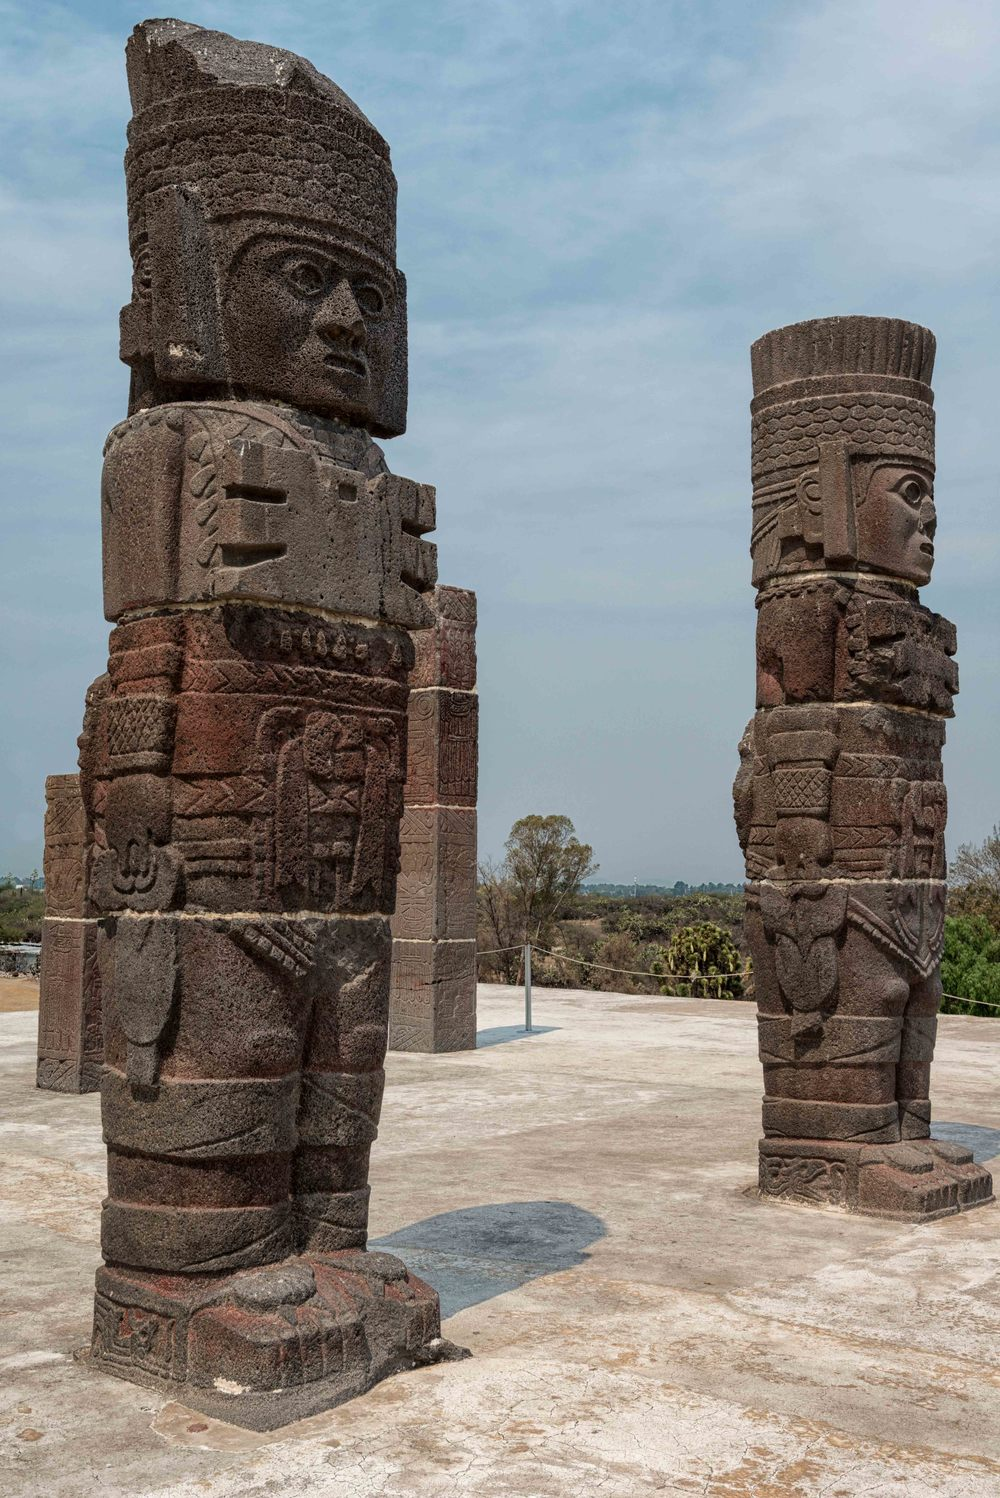 Columns in the form of Toltec warriors in Tula.